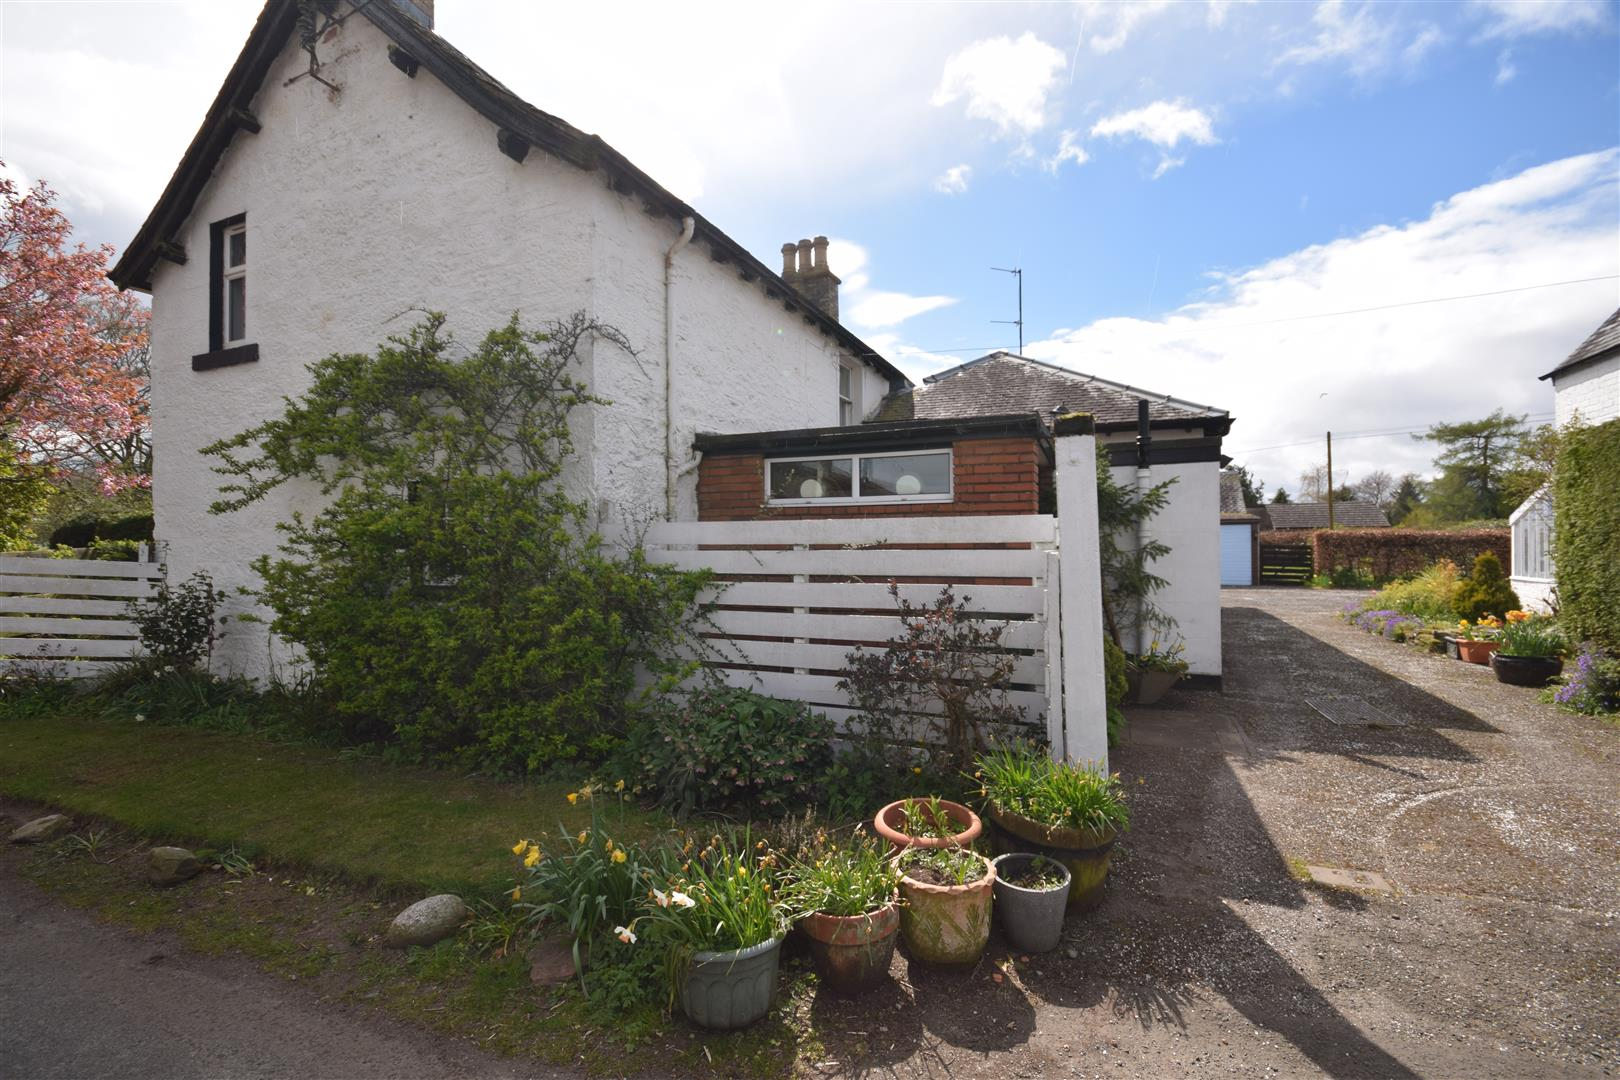 Robins Mead, Woodlands Road, Blairgowrie, Perthshire, PH10 6JX, UK